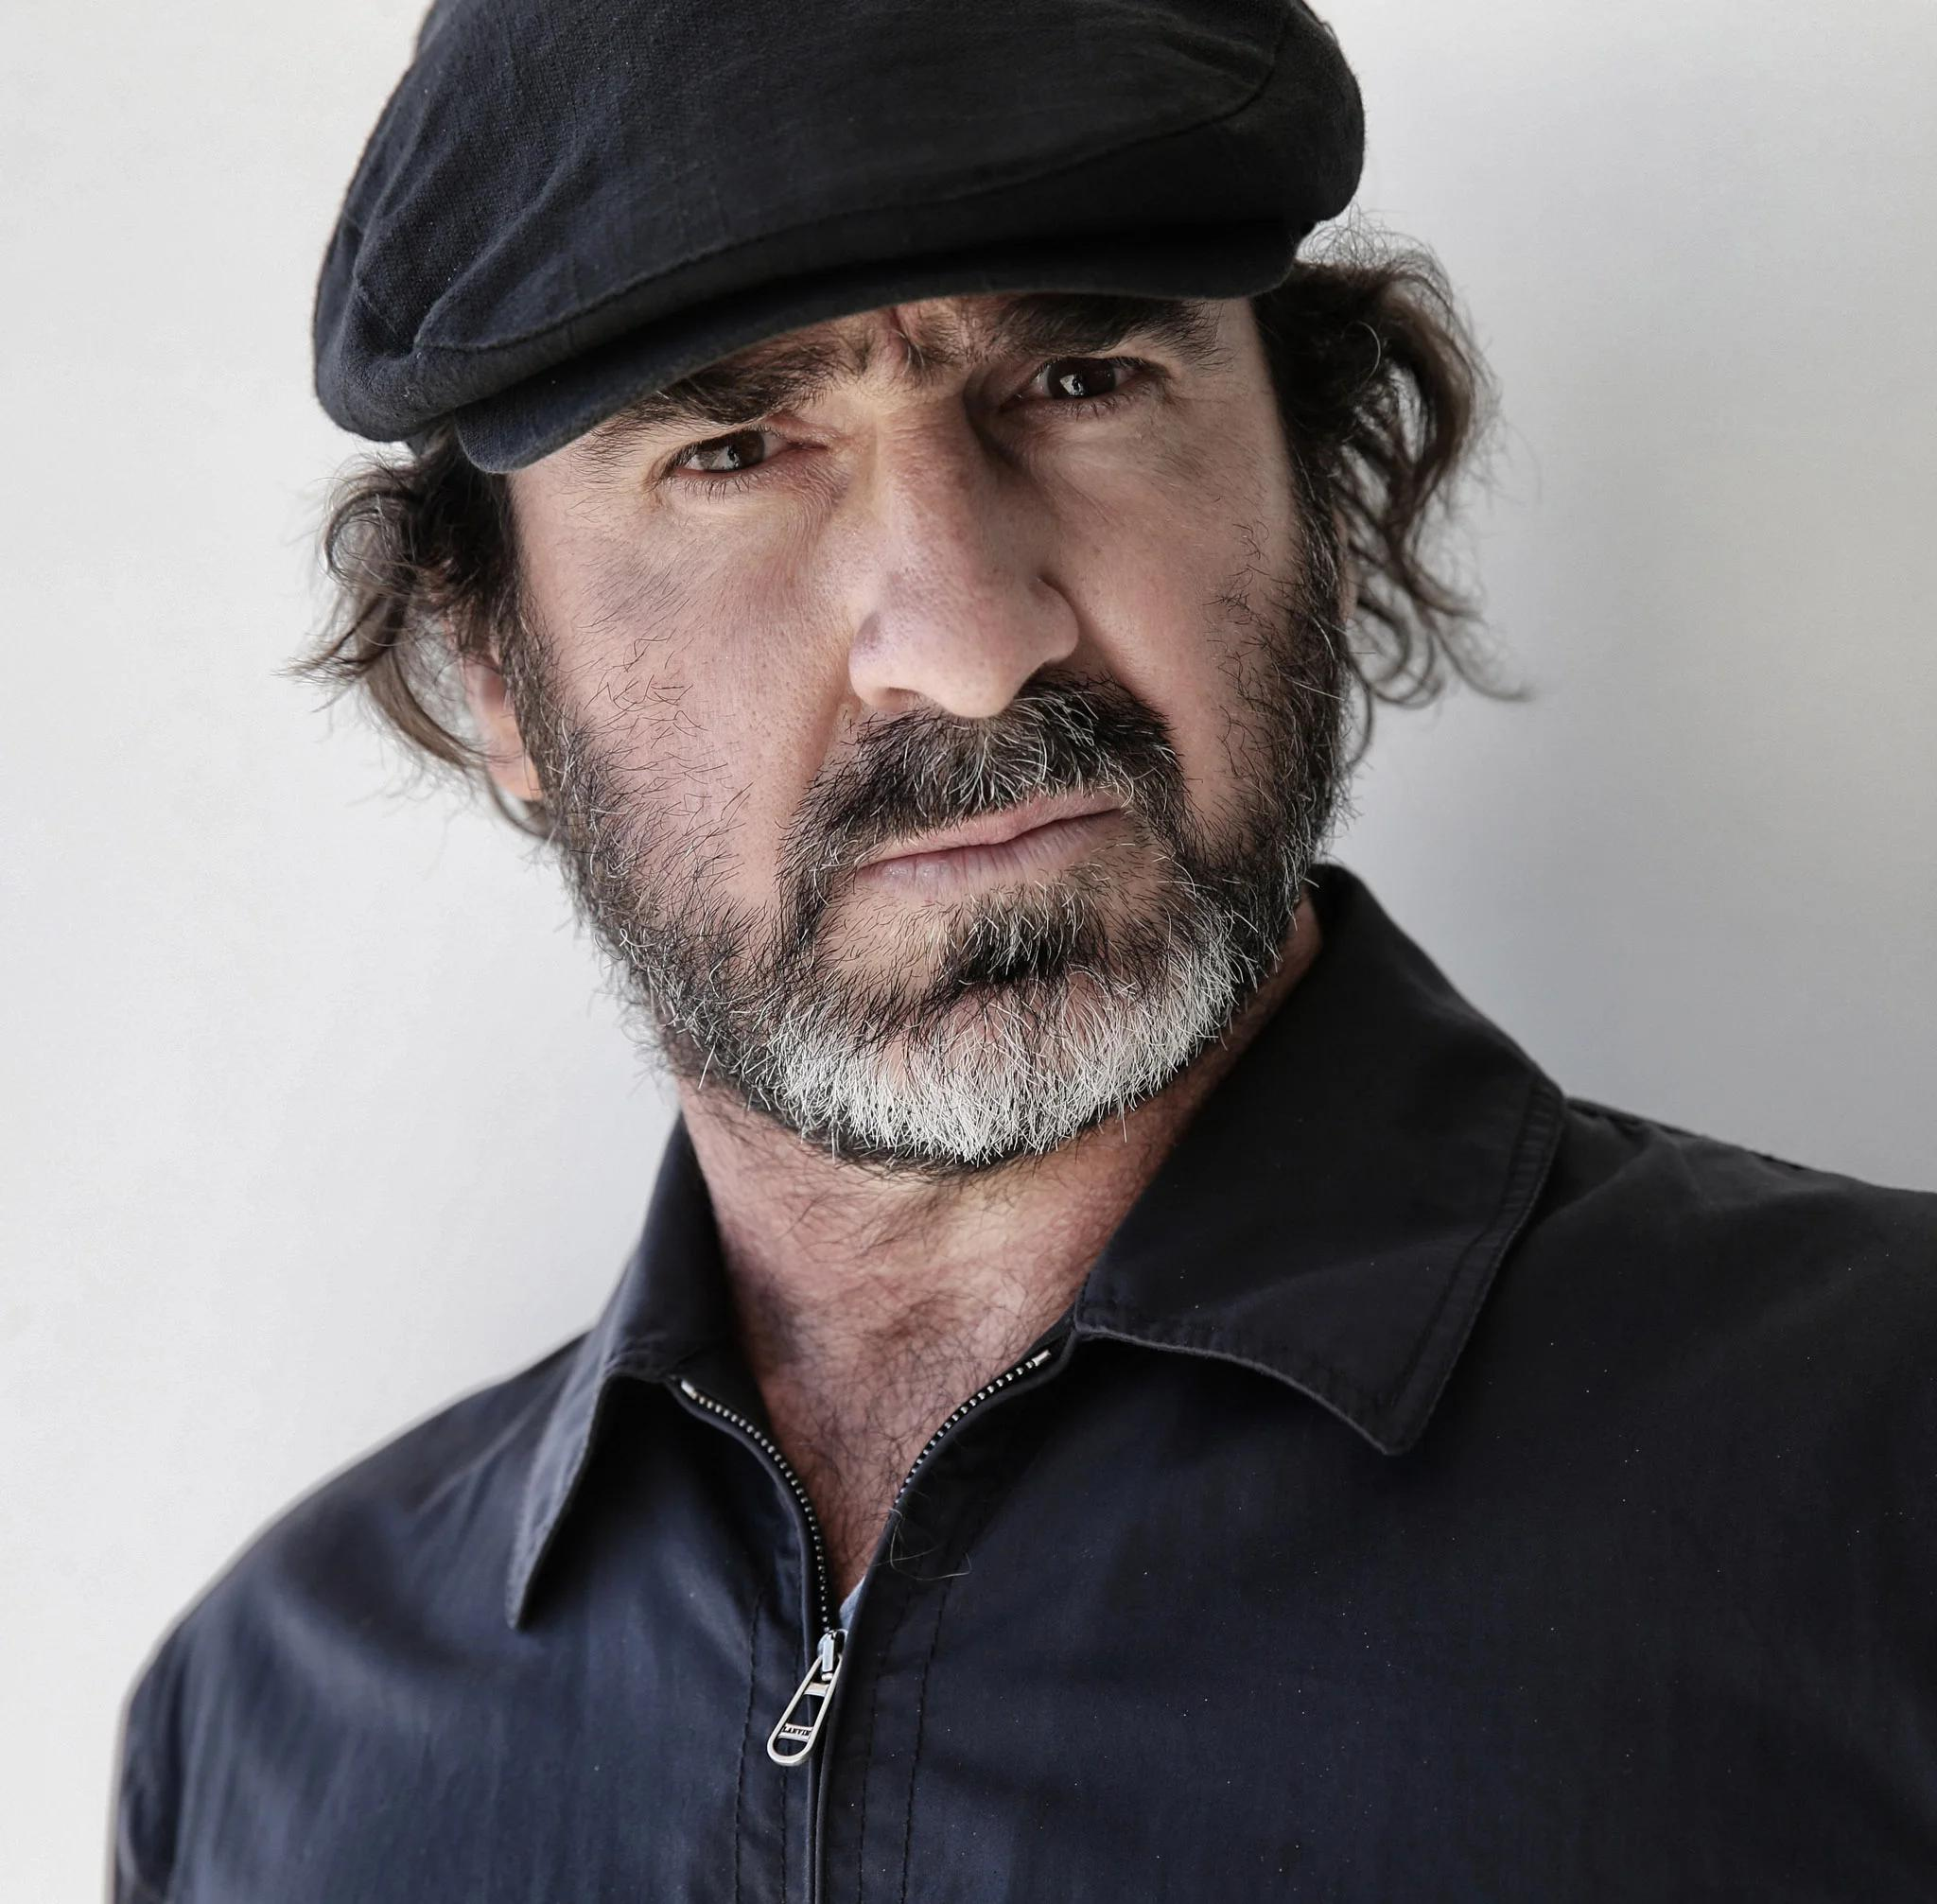 The latest tweets from éric cantona (@cantona_276). Ooh, aah! Eric Cantona shows off prosthetic penis in new ...